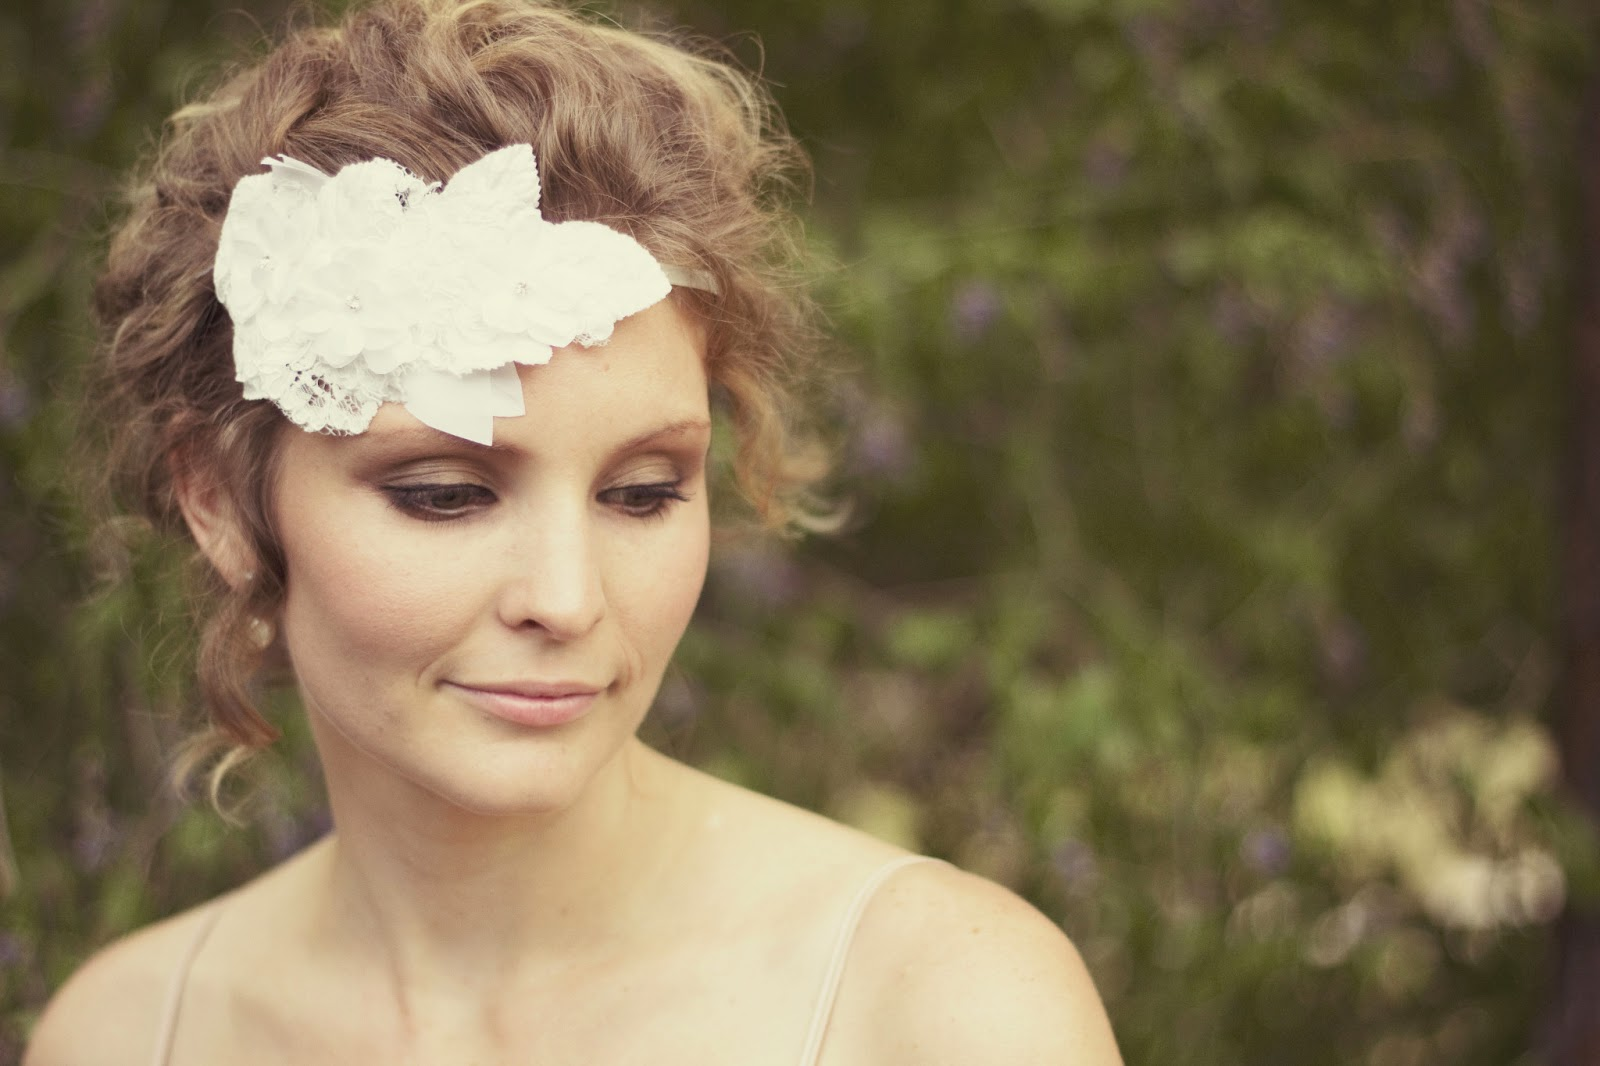 Grace Designs Canberra Etsy Seller Wedding Hair Accessories